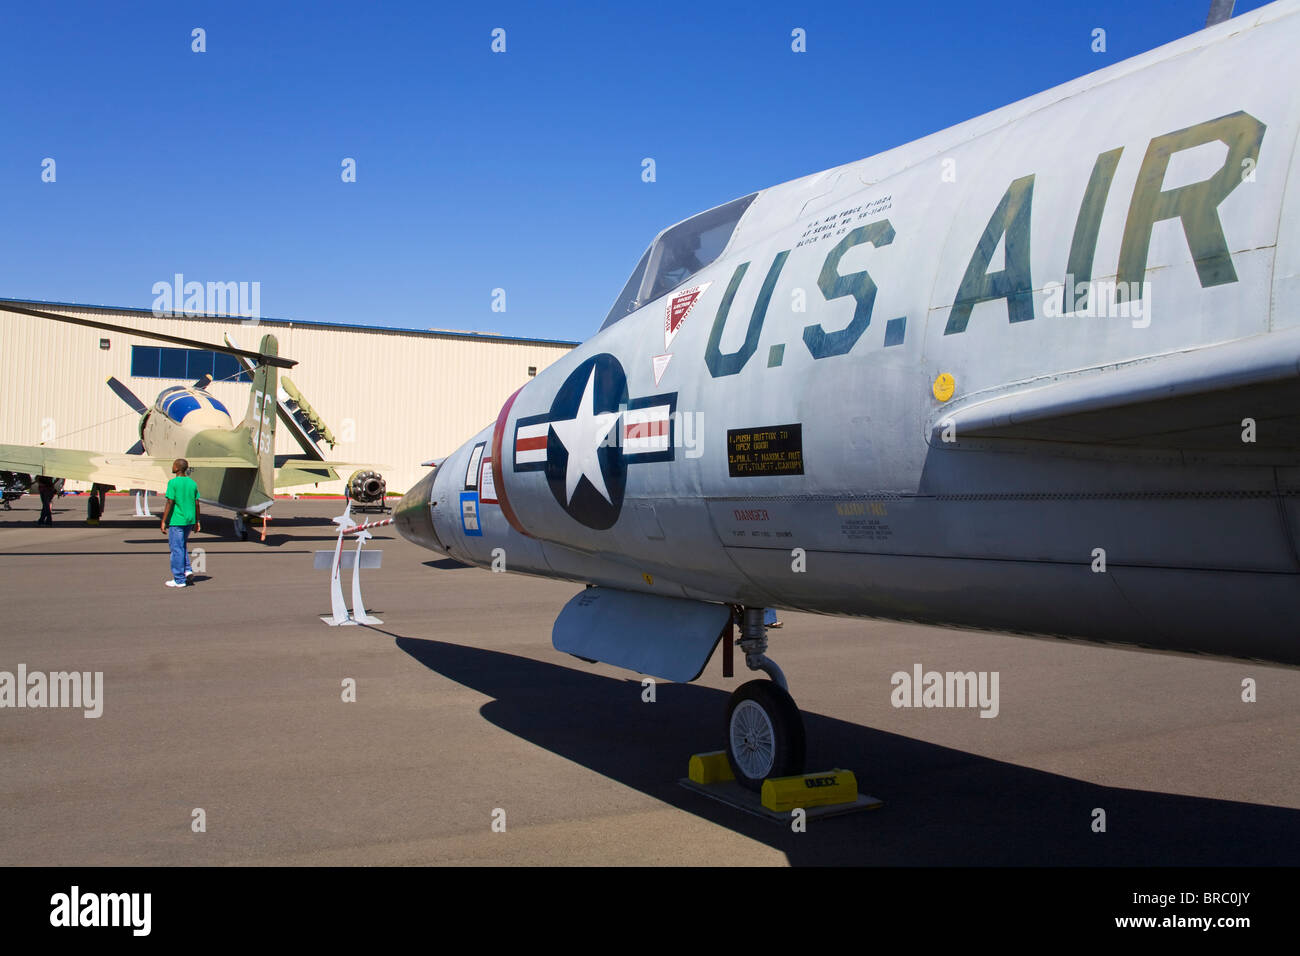 Convair F-102 Delta Dagger at the Aerospace Museum of California, Sacramento, California, USA Stock Photo